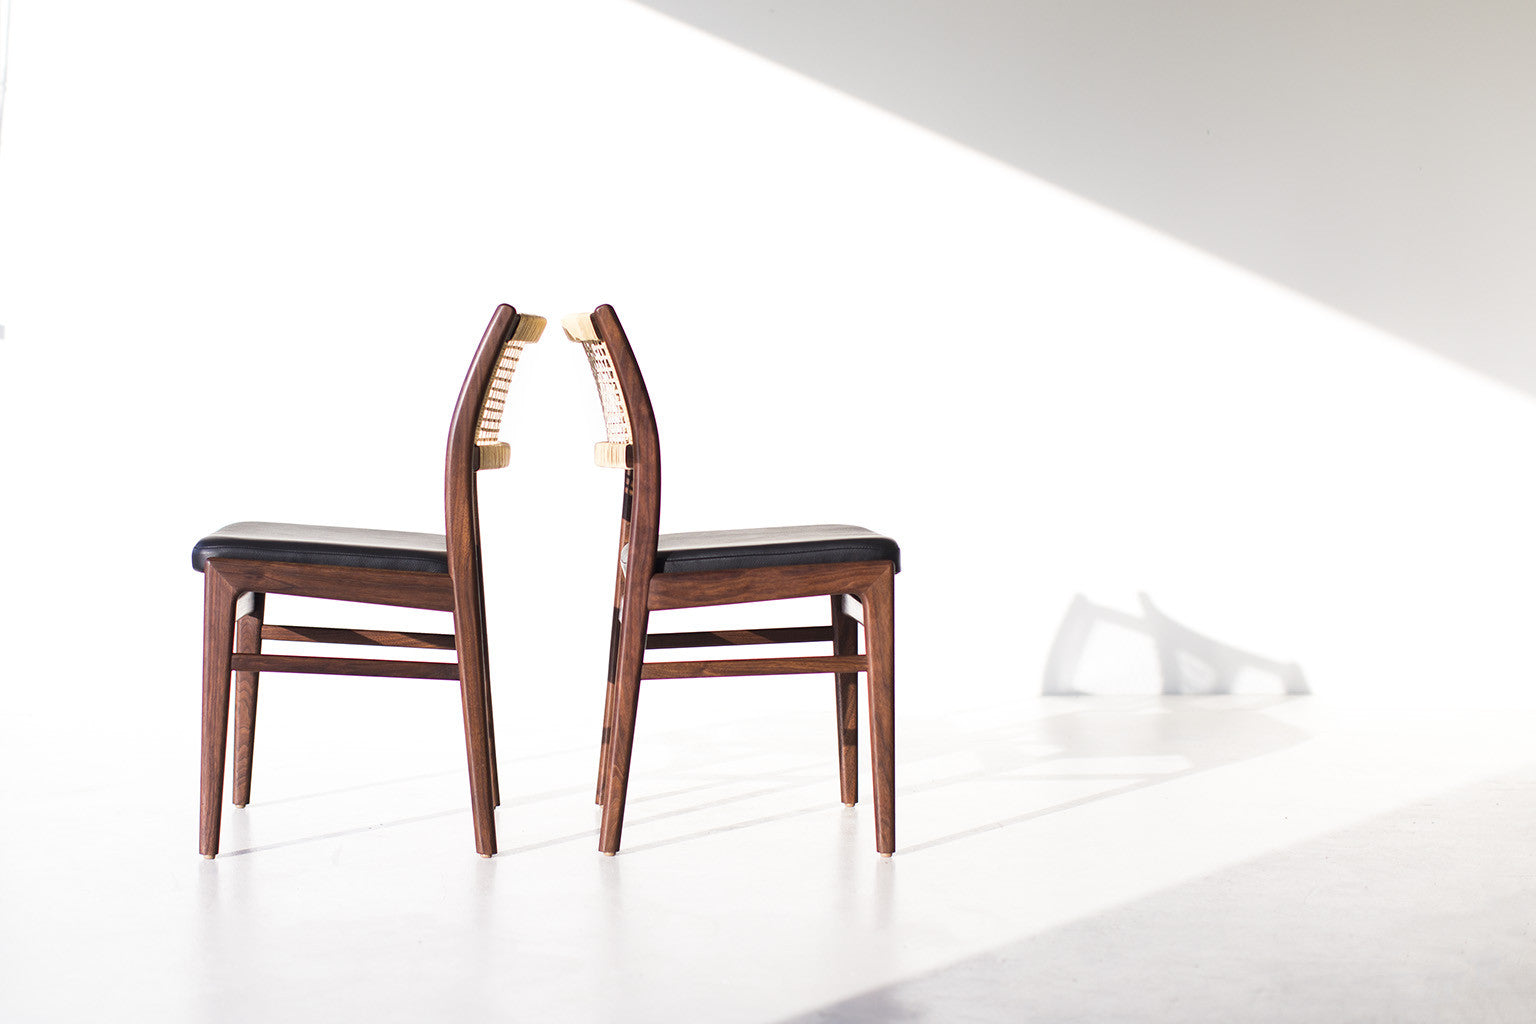 sylve-stenquist-dining-chairs-tribute-furniture-T-1002-07